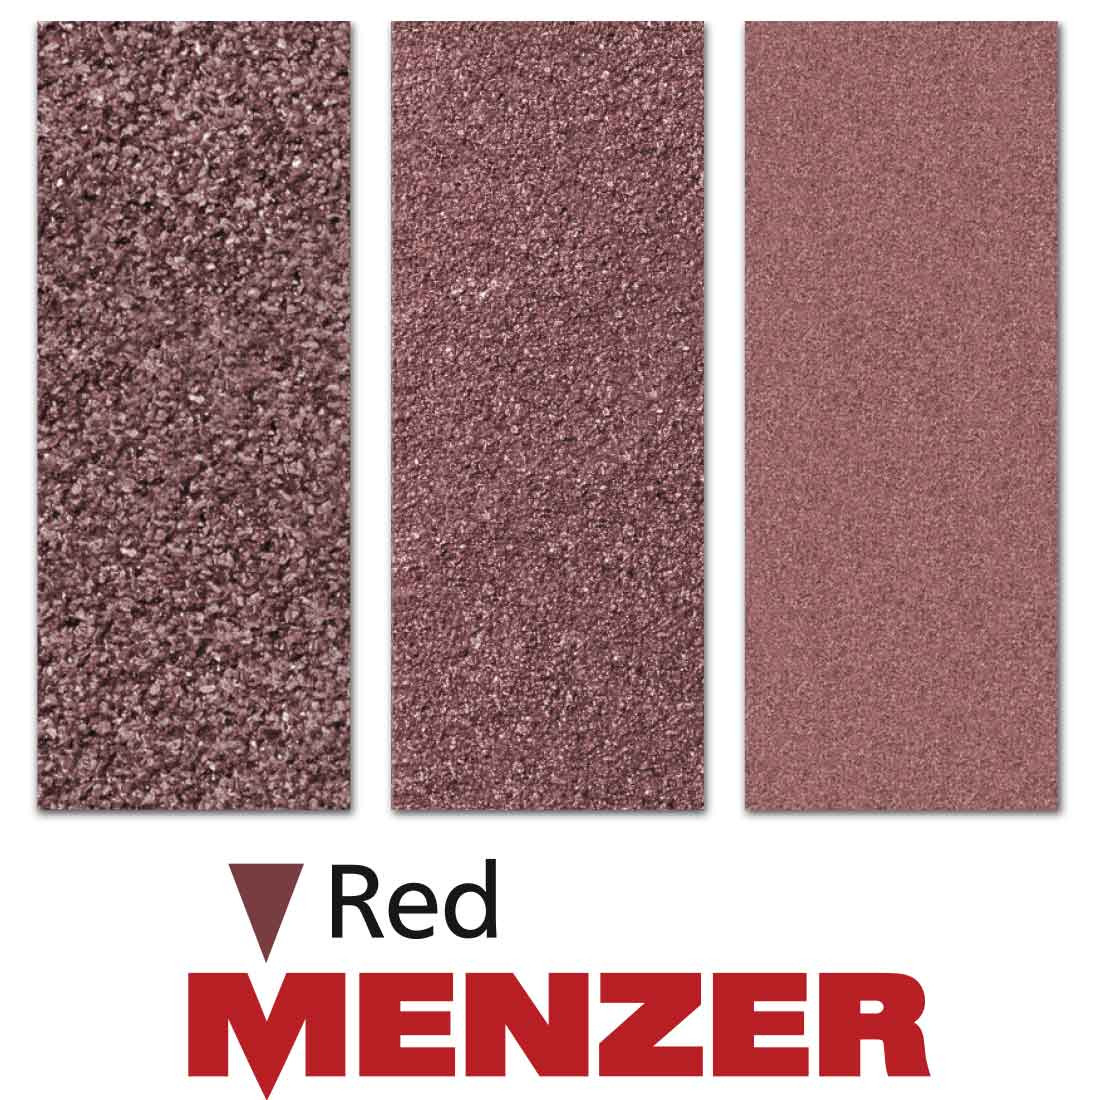 MENZER Red